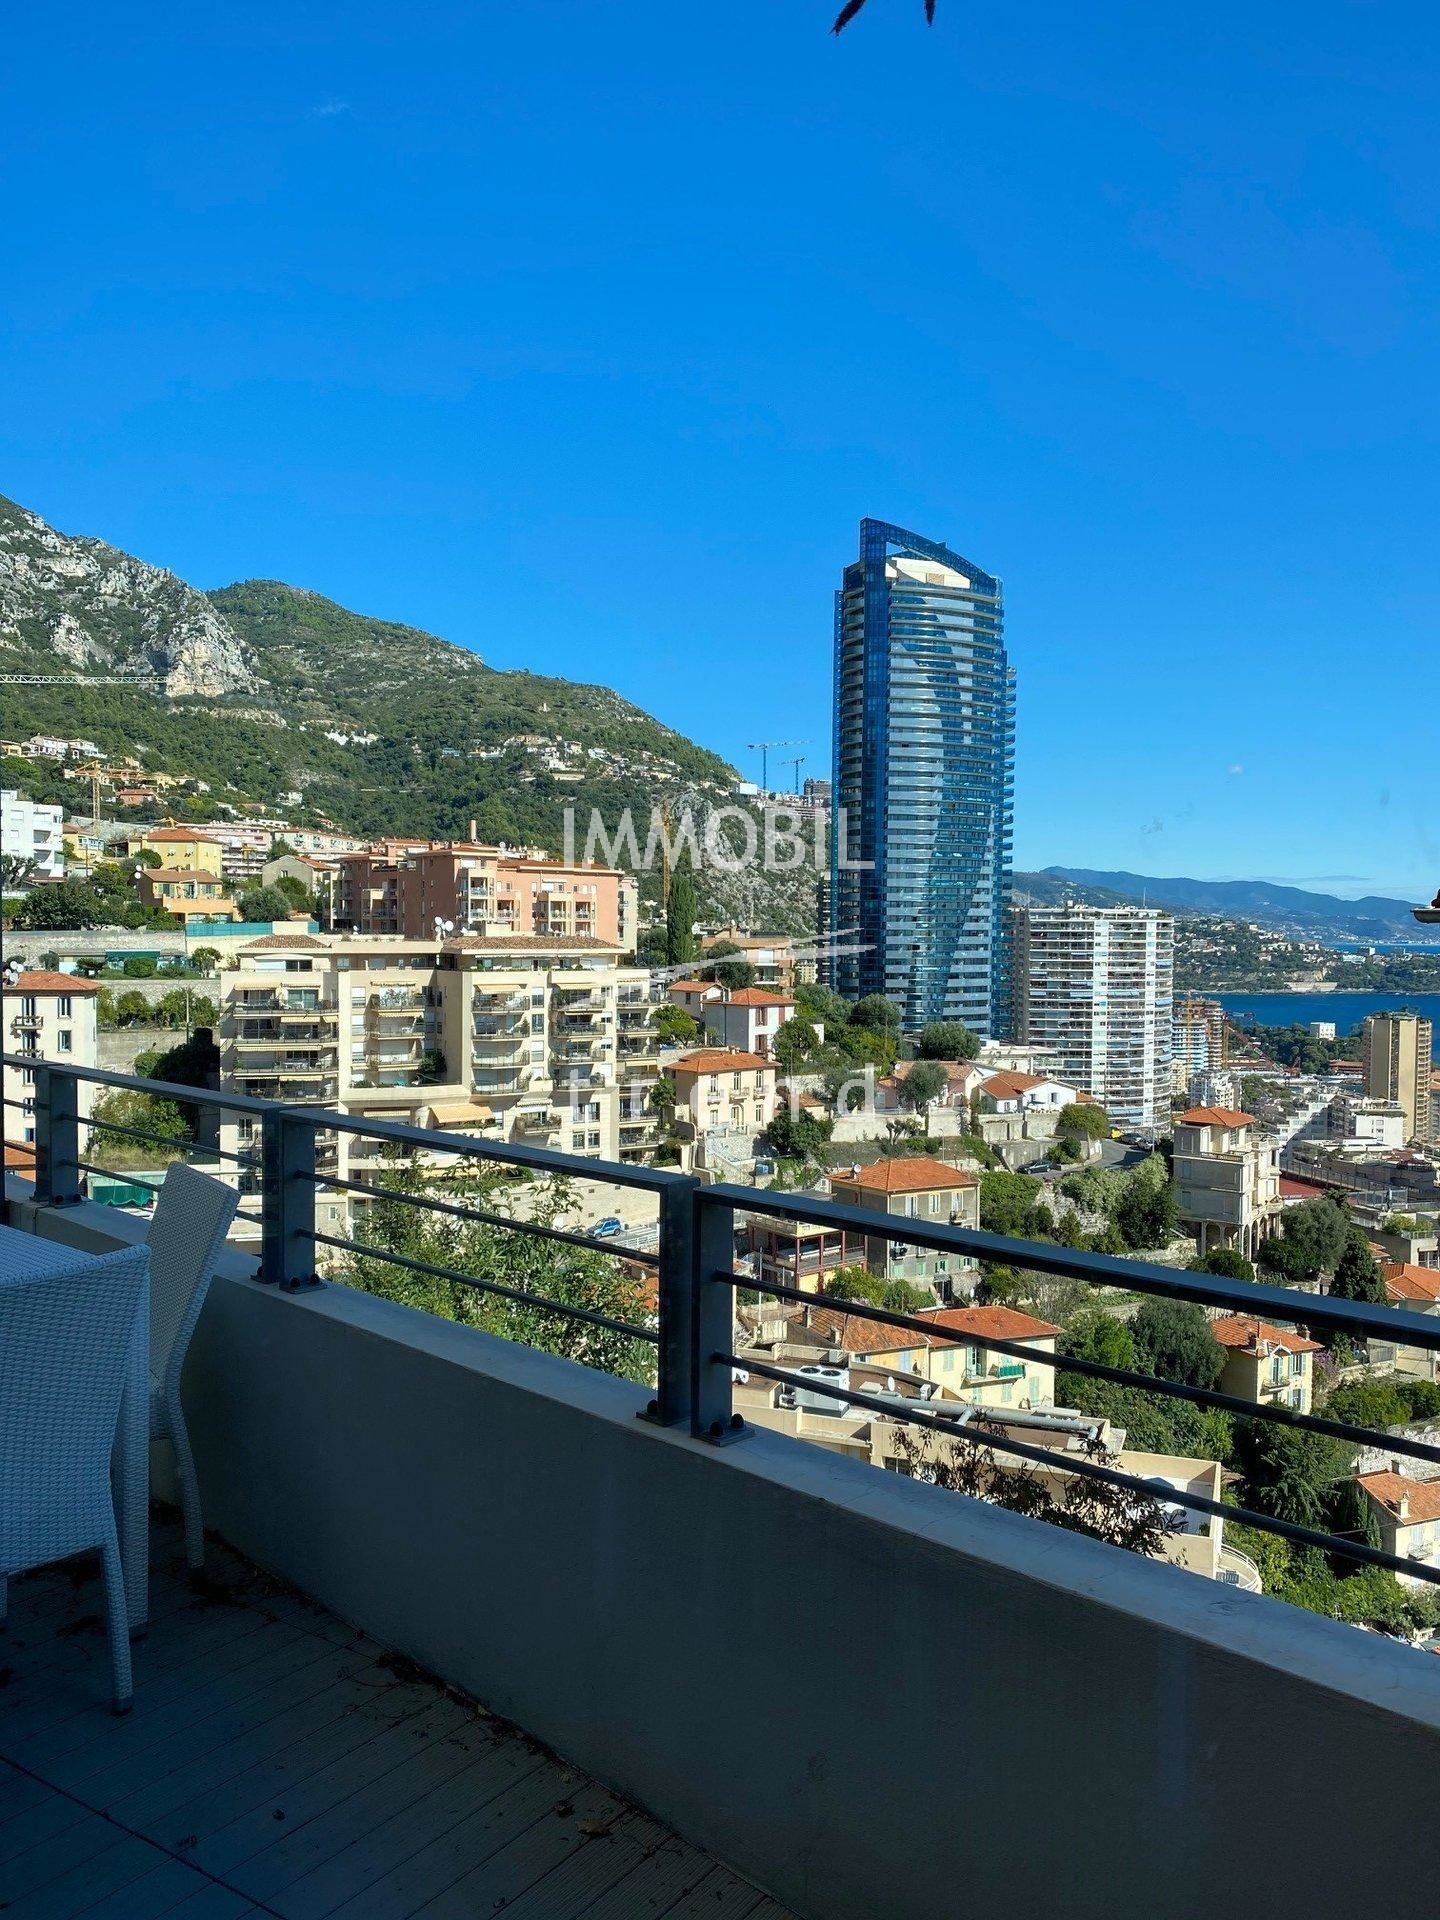 Real estate Beausoleil - For rental, close to Monaco, one bedroom apartment with terrace, sea view and parking space